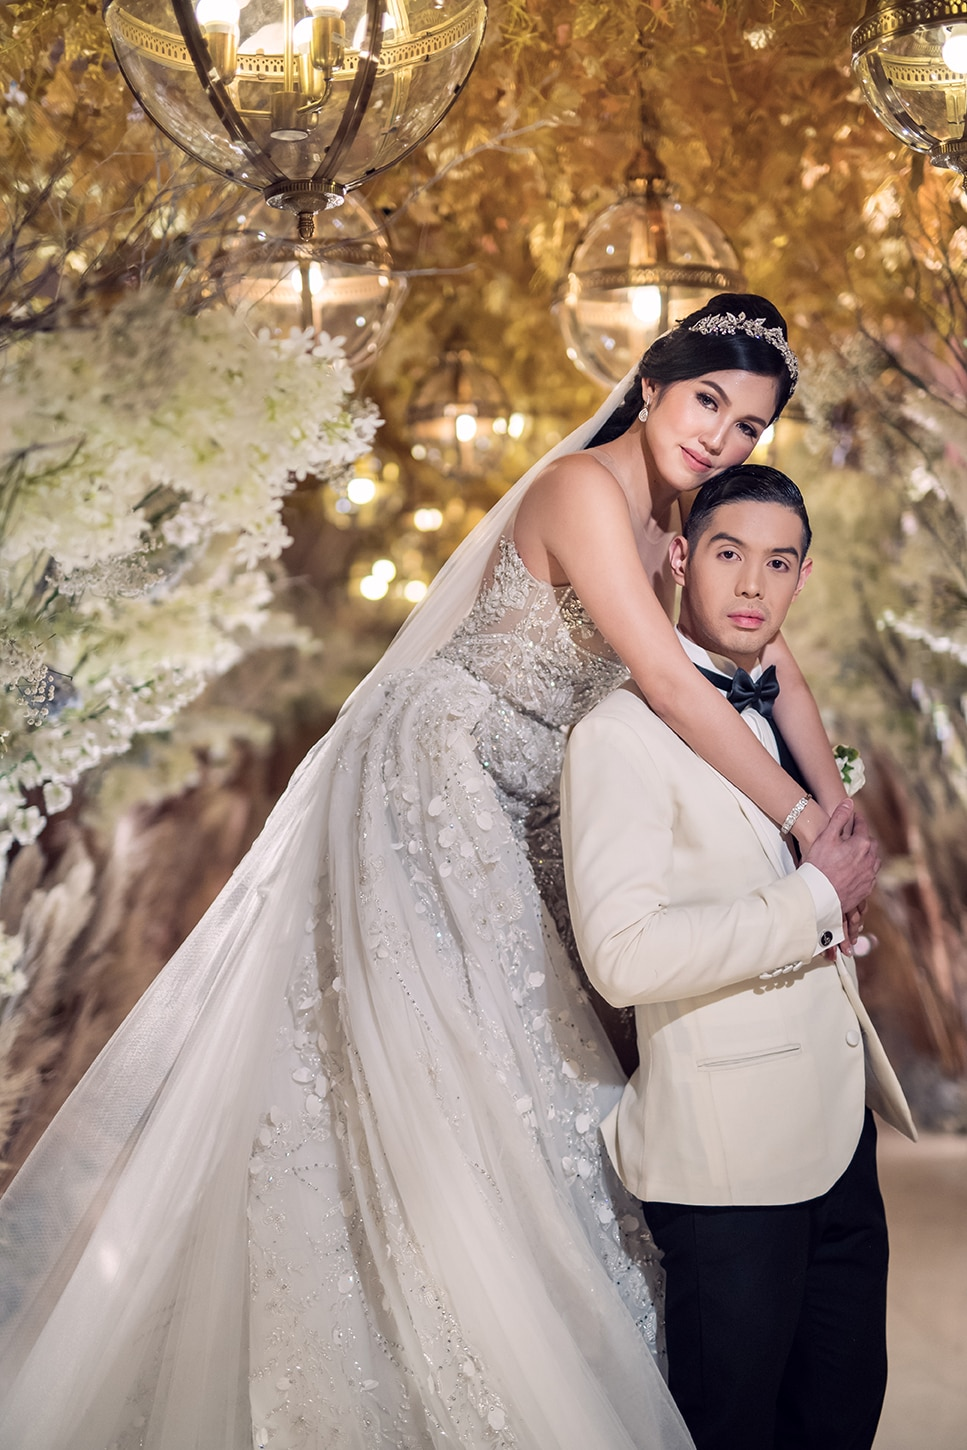 Jam and Enzo, a real life fairy tale couple